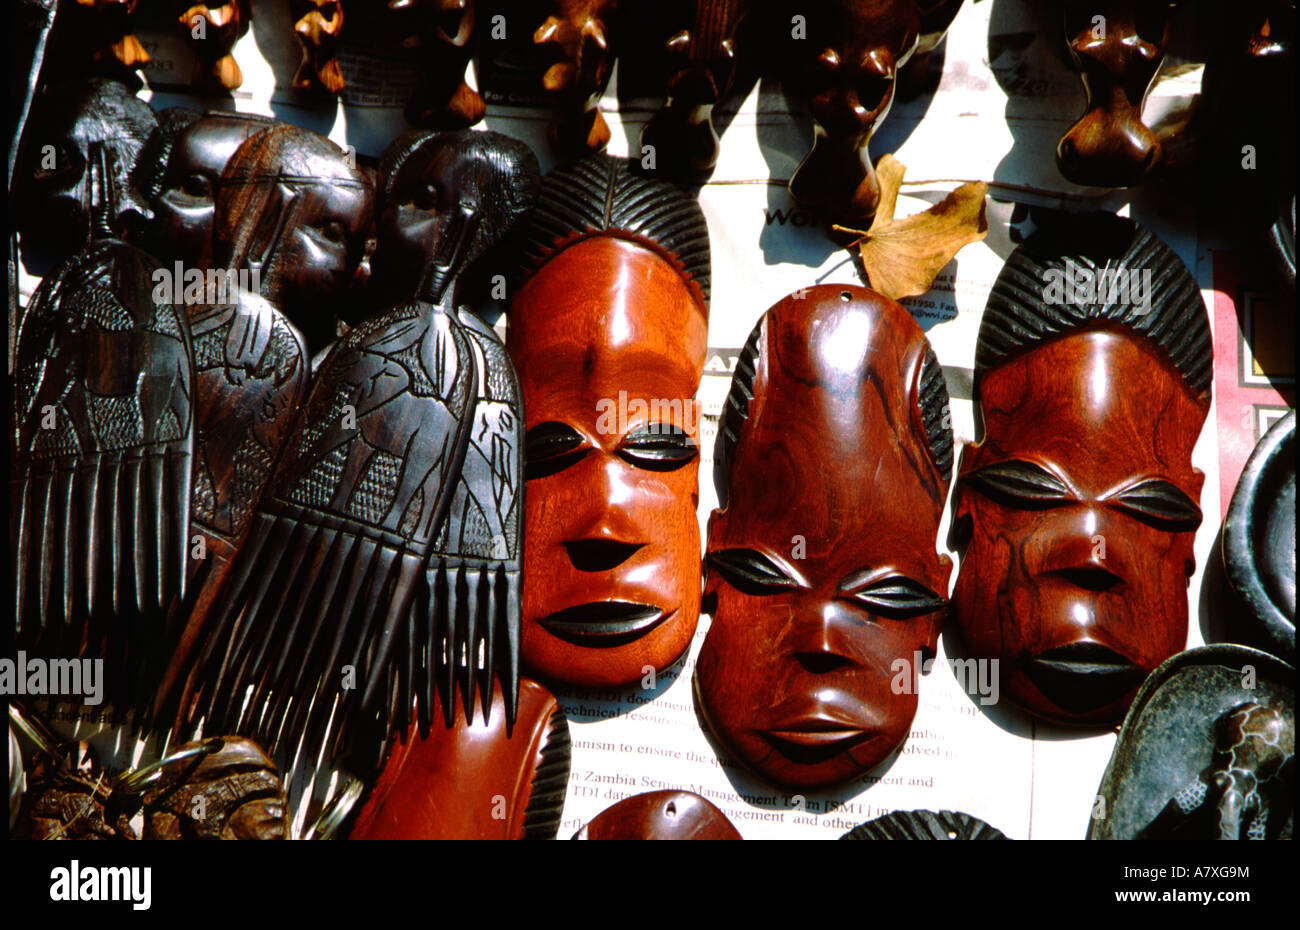 Africa Zambia Victoria Falls National Park Local Handicrafts Sold